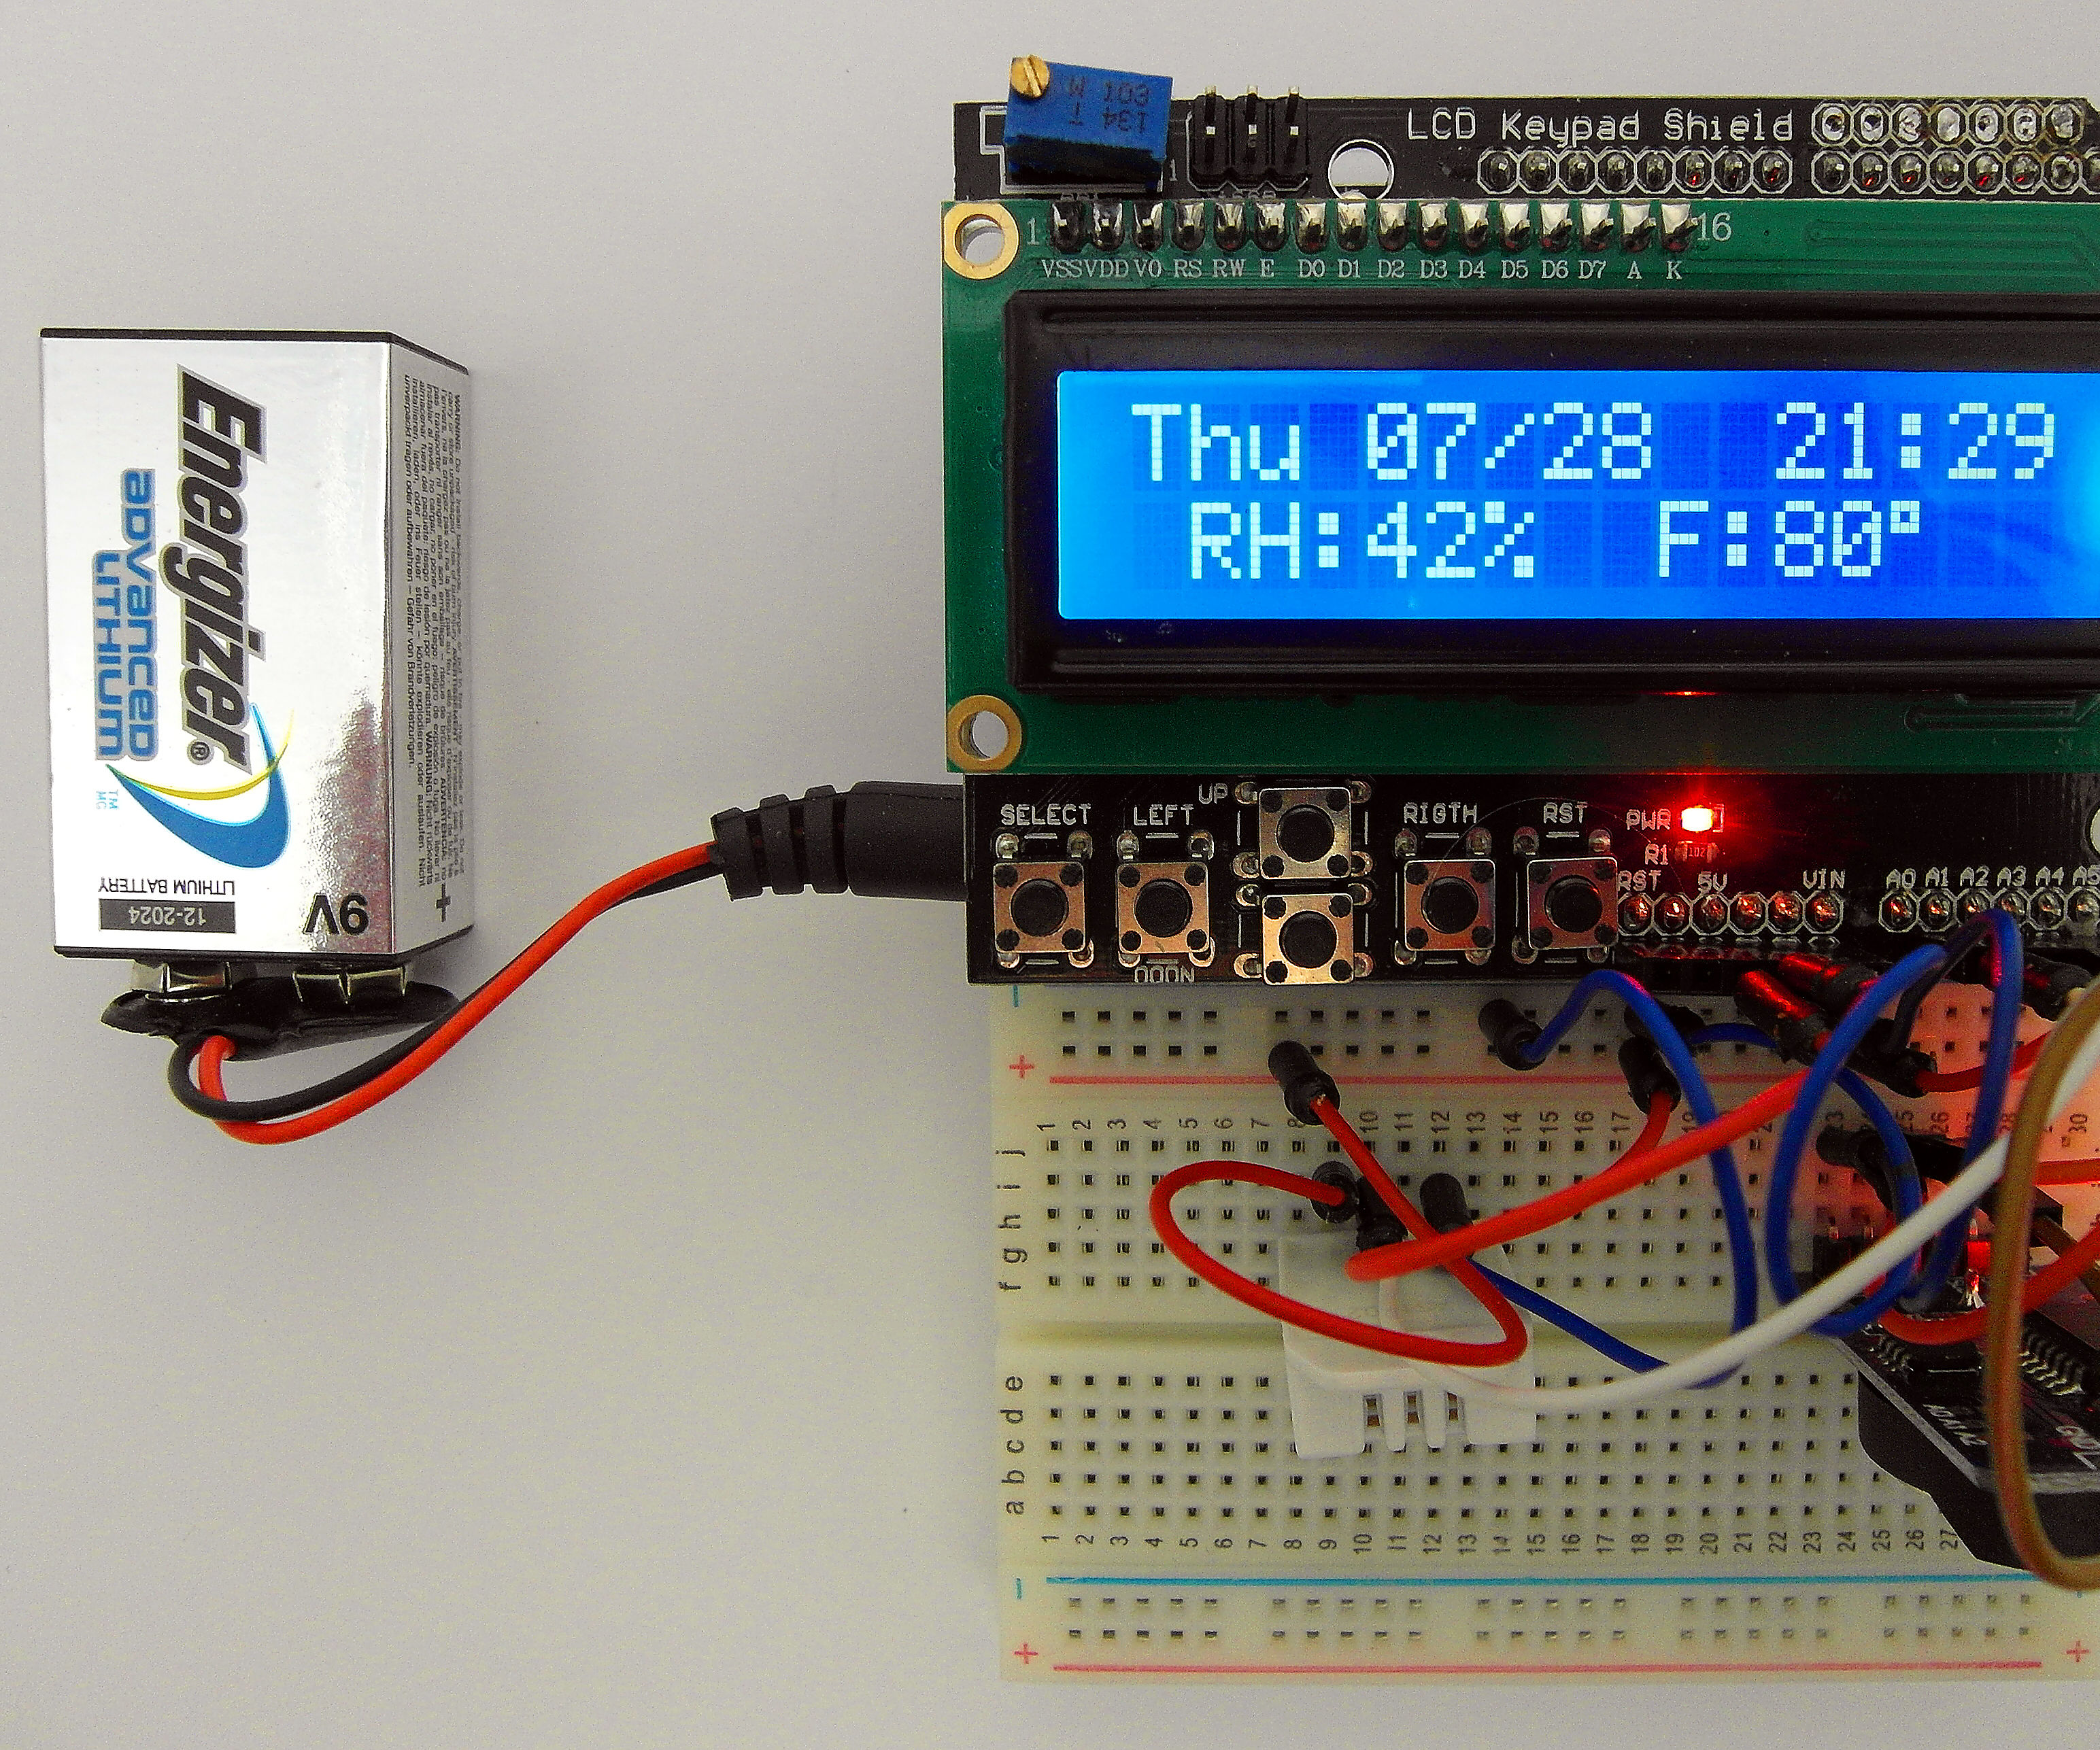 Day of The Week, Calendar, Time, Humidity and Temperature: Battery Saving Sketch, LCD Shield,  DHT22, RTC3231 and Arduino